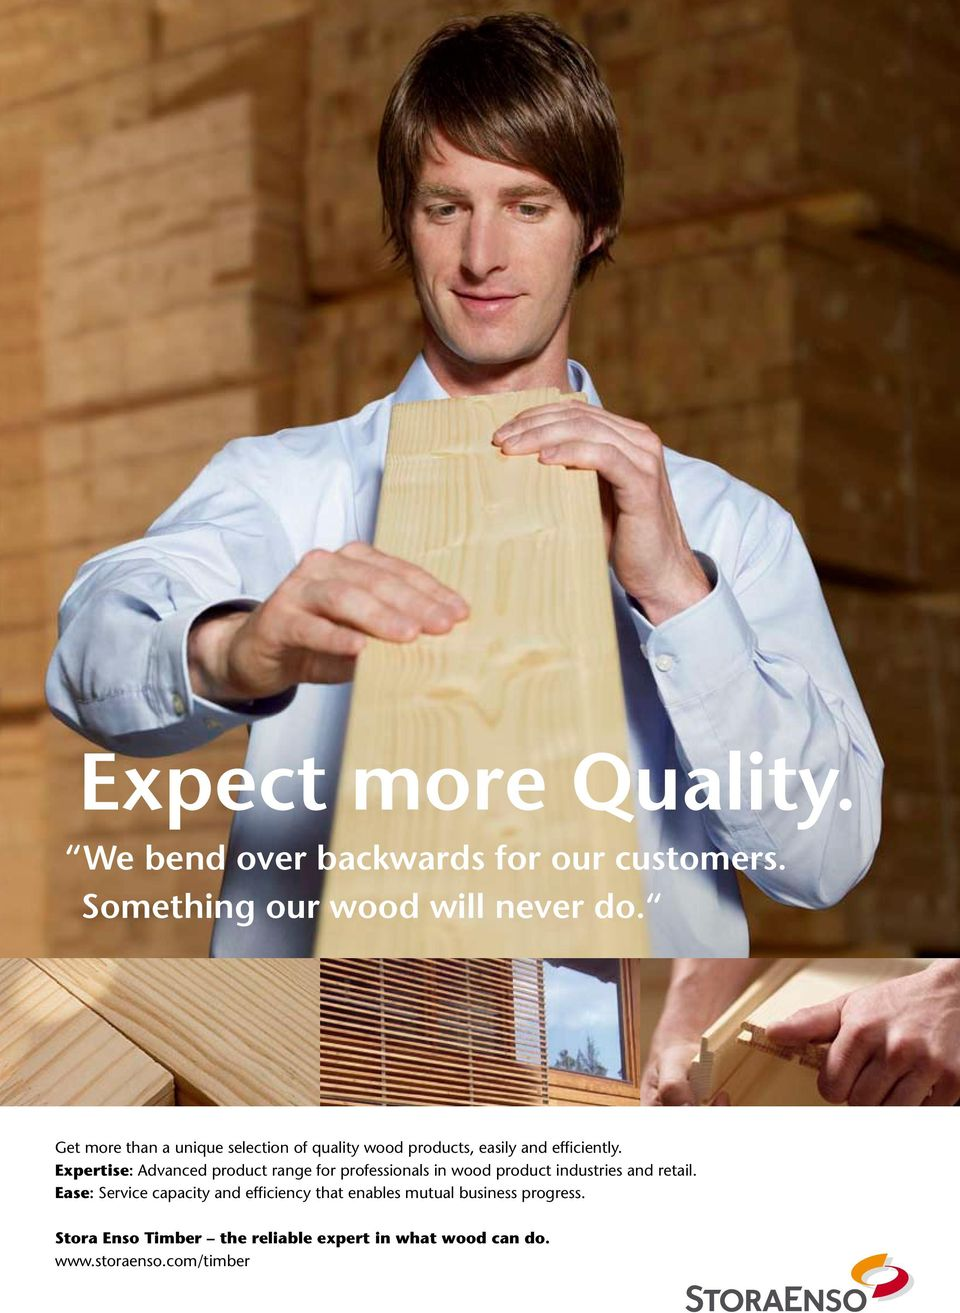 Expertise: Advanced product range for professionals in wood product industries and retail.